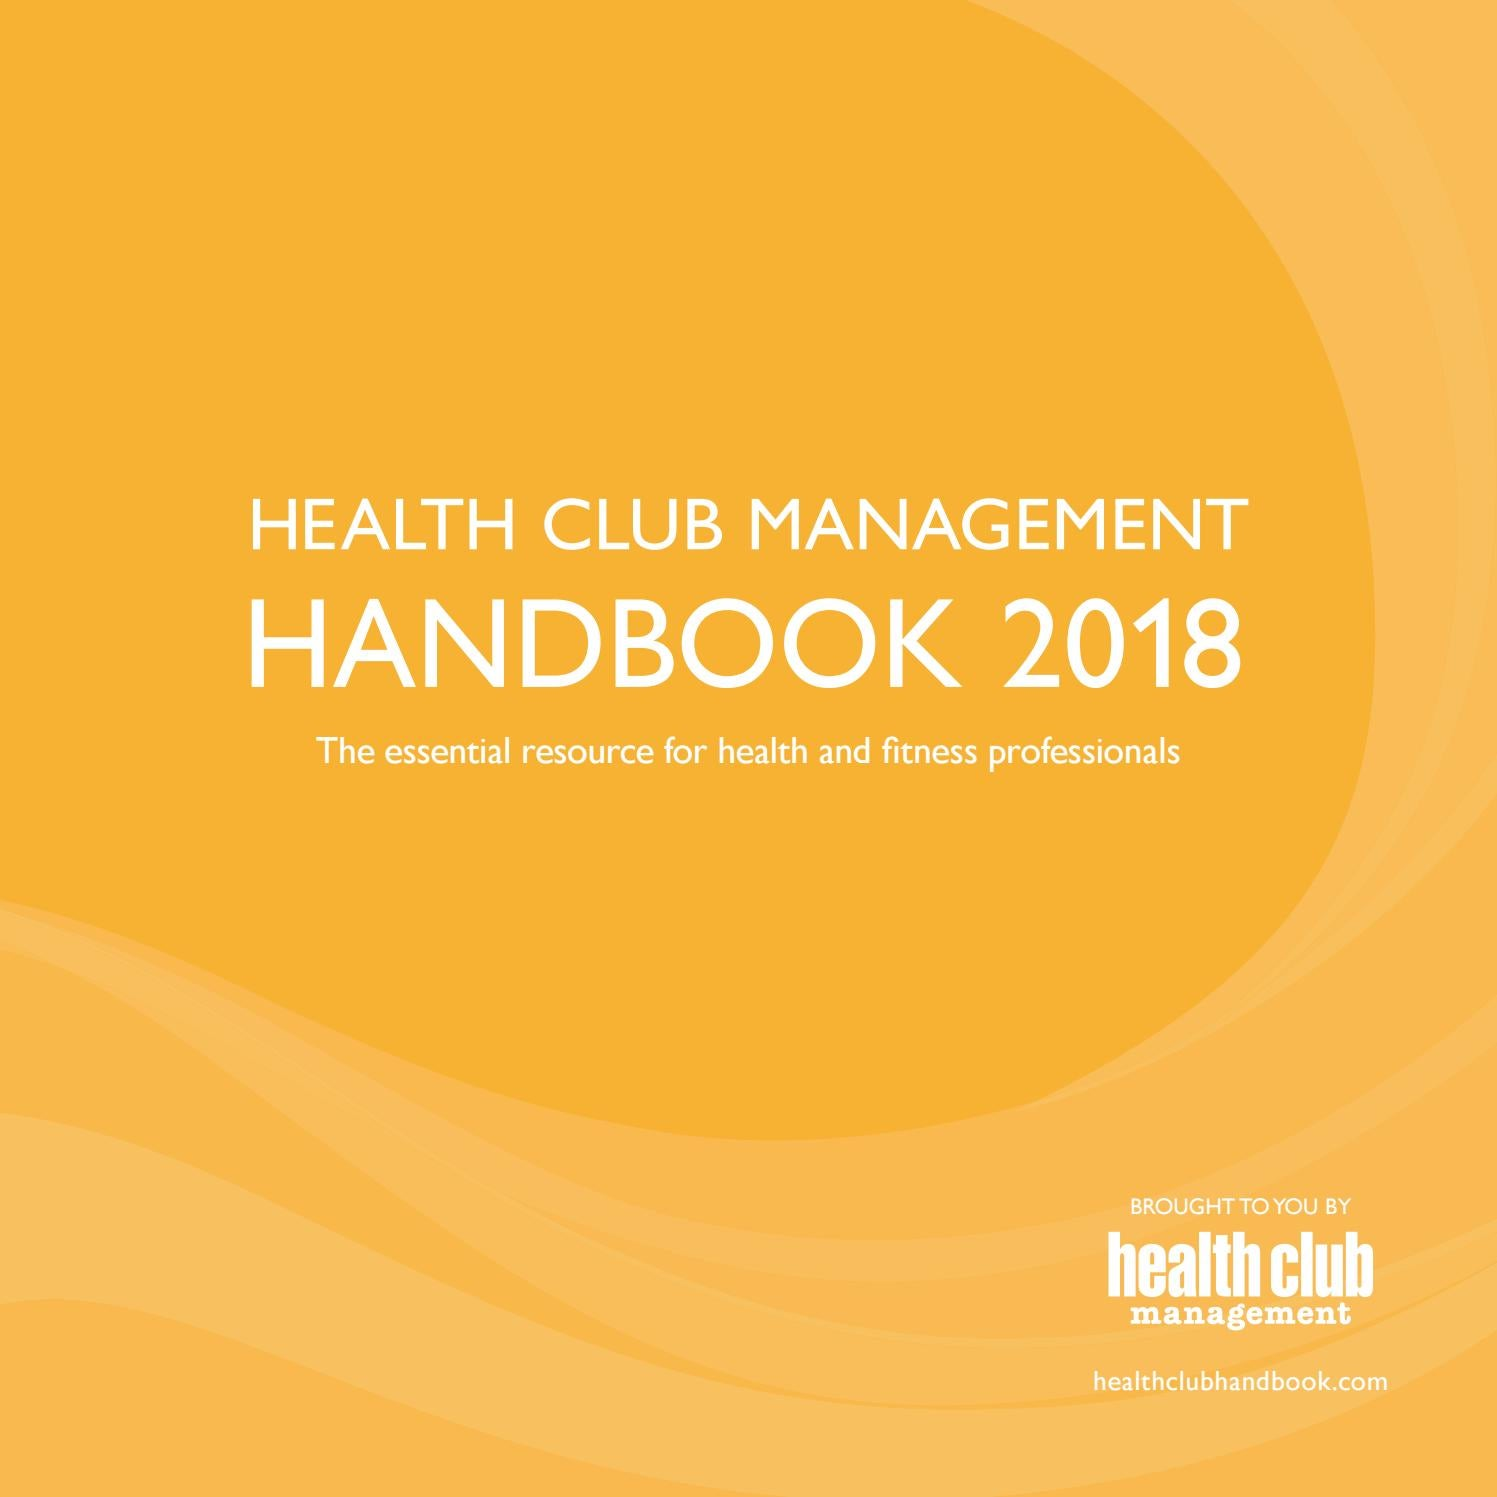 Health Club Management Handbook 2018 by Leisure Media - issuu